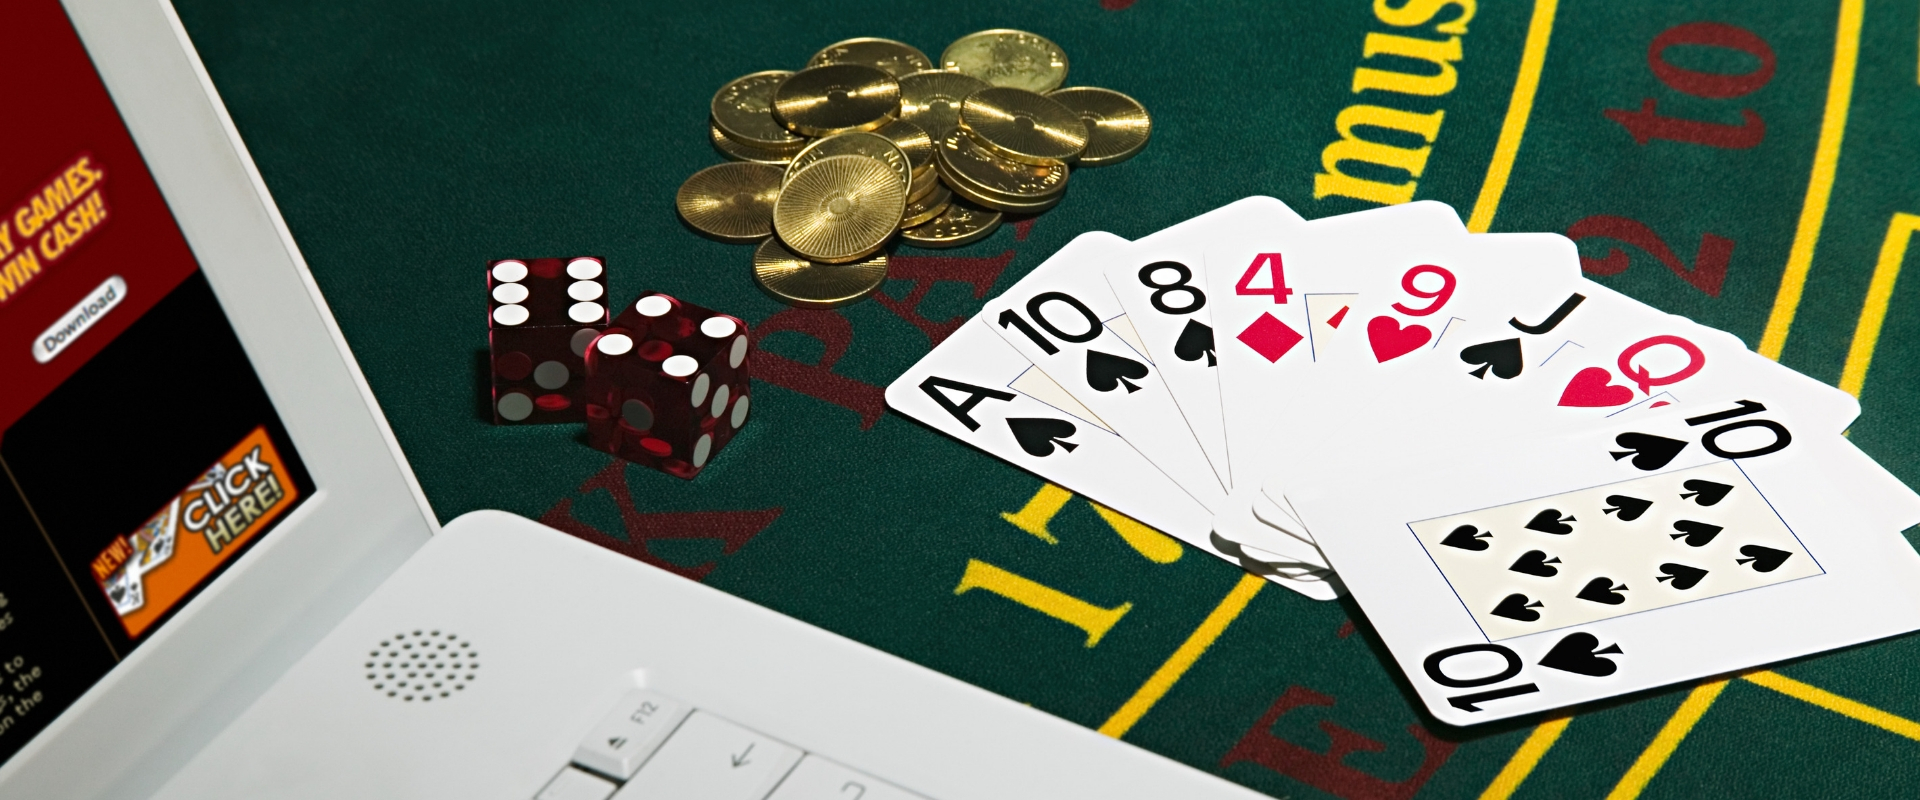 The Attributes of an Online Poker Champion